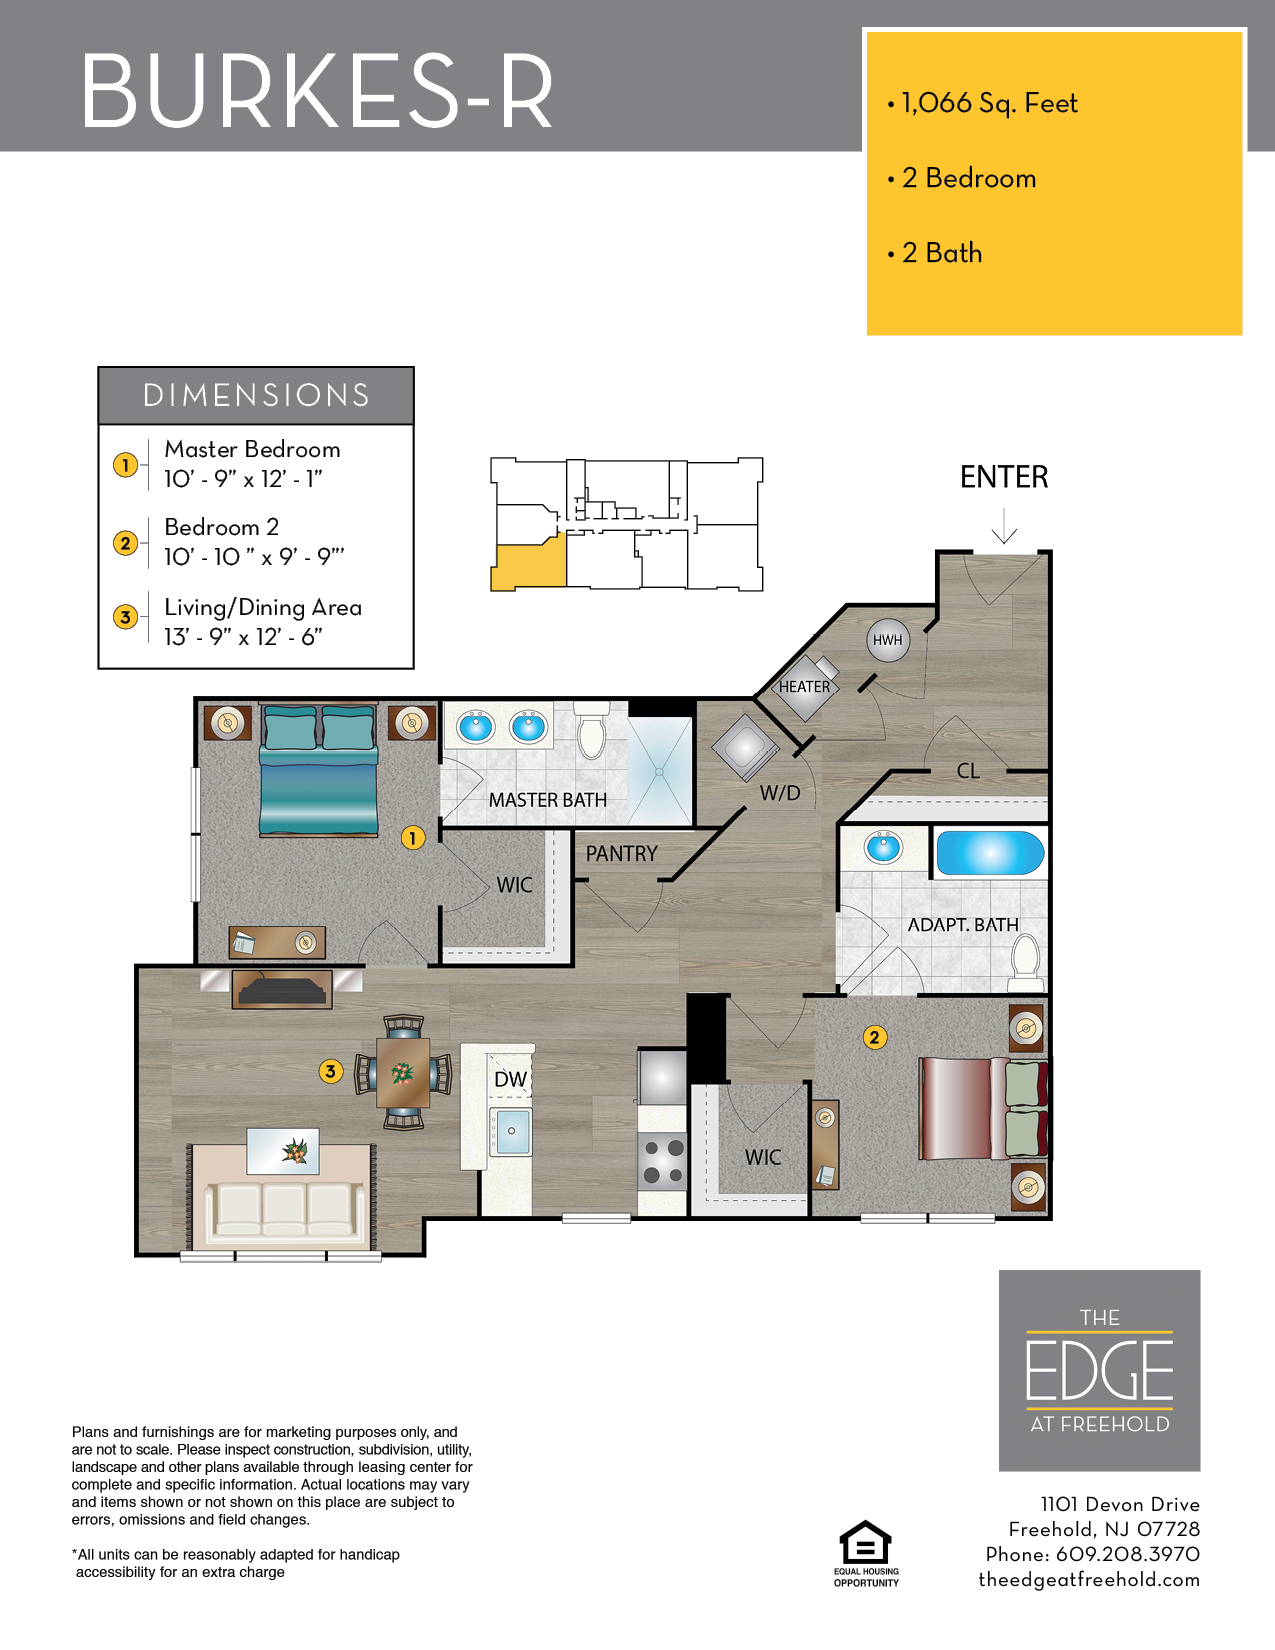 Burkes-R Floor Plan